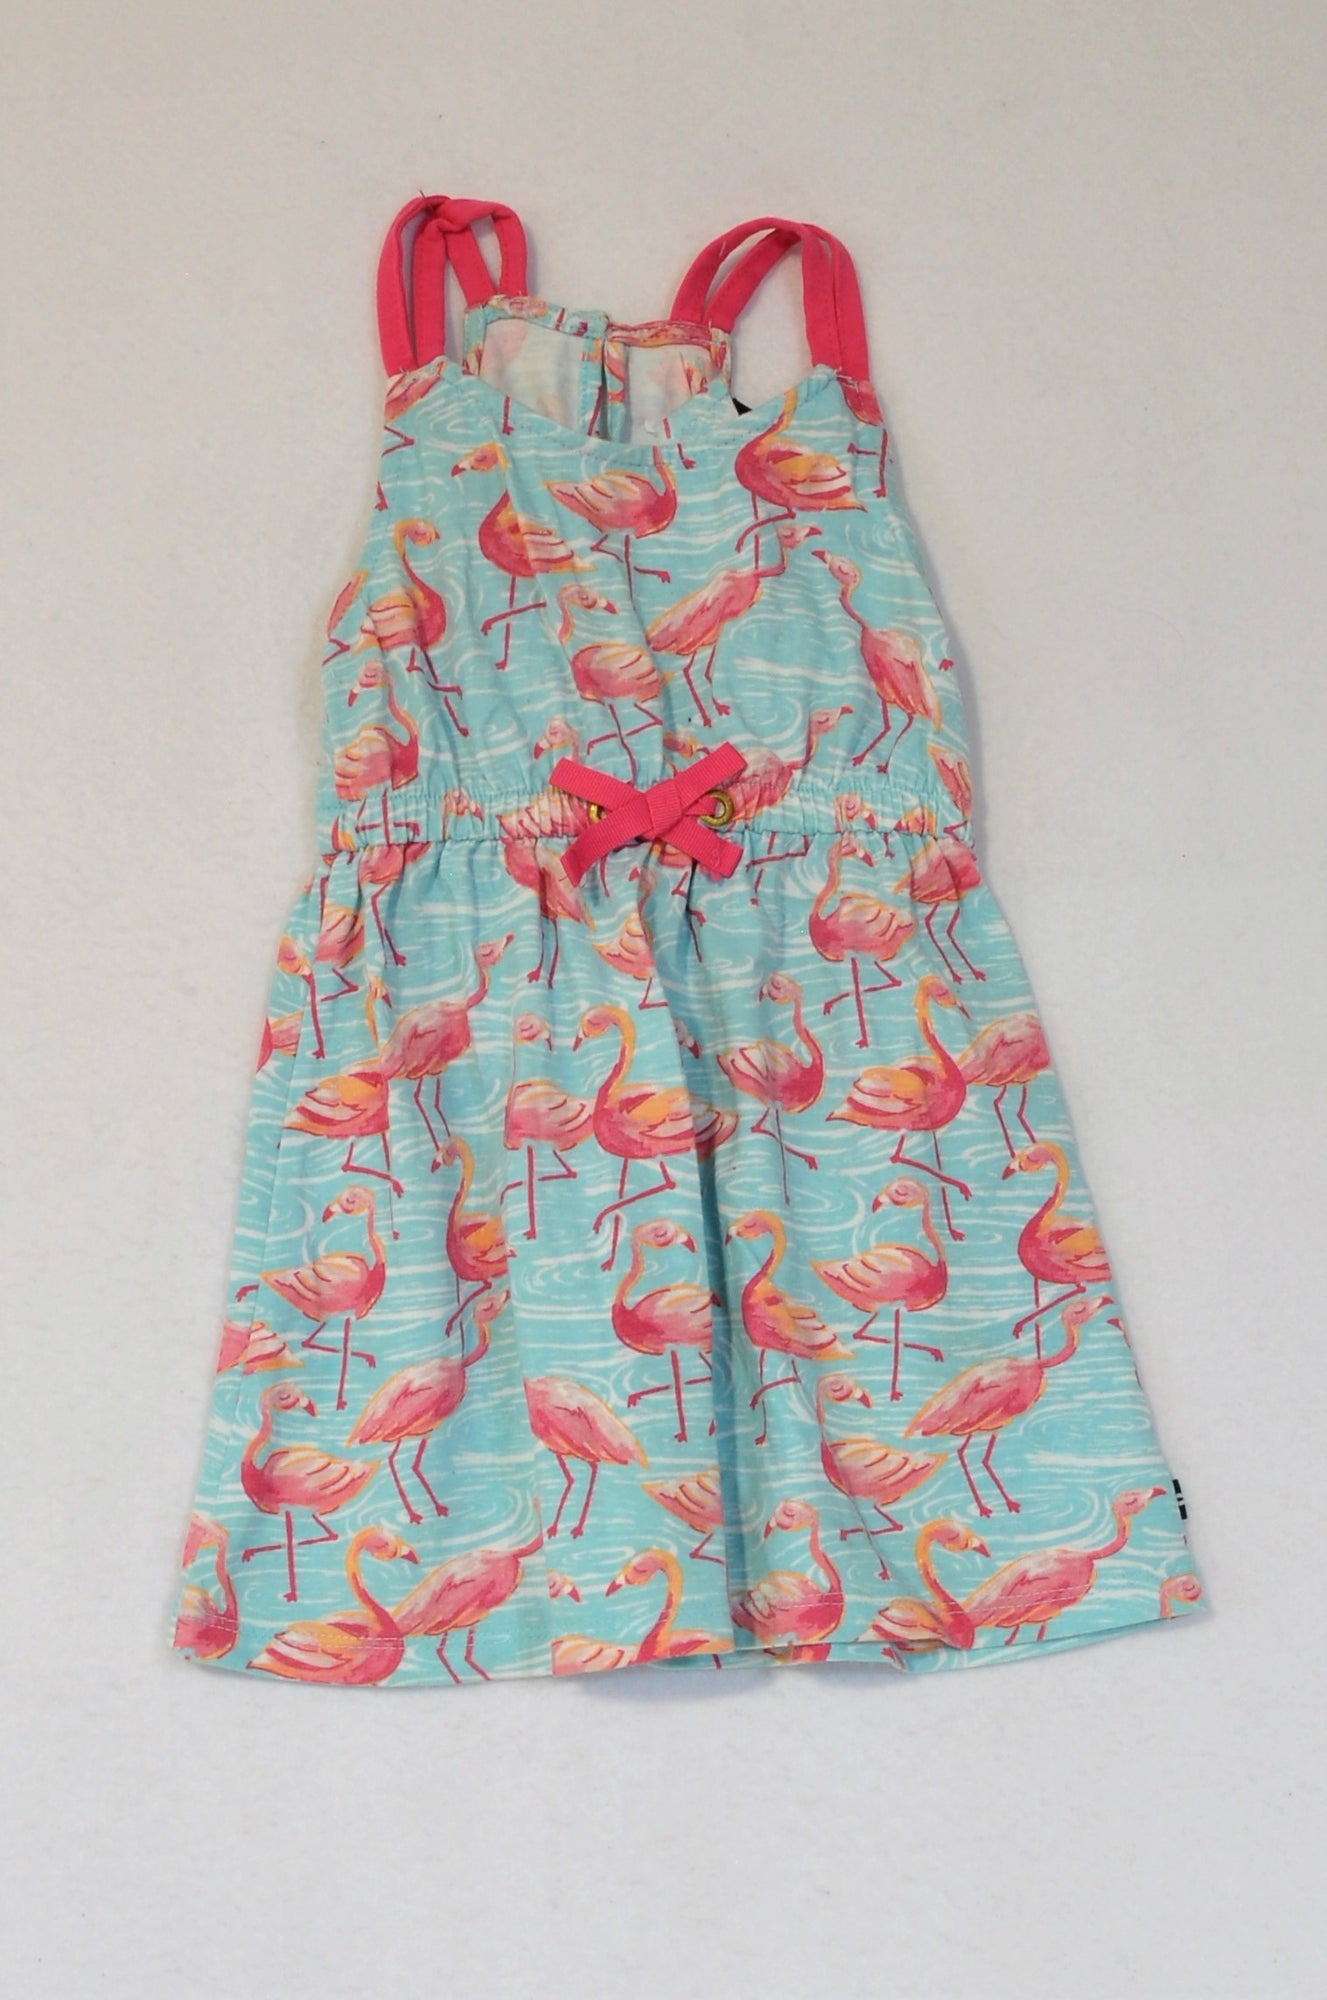 Nautica Blue & Pink Flamingo Summer Dress Girls 1-2 years